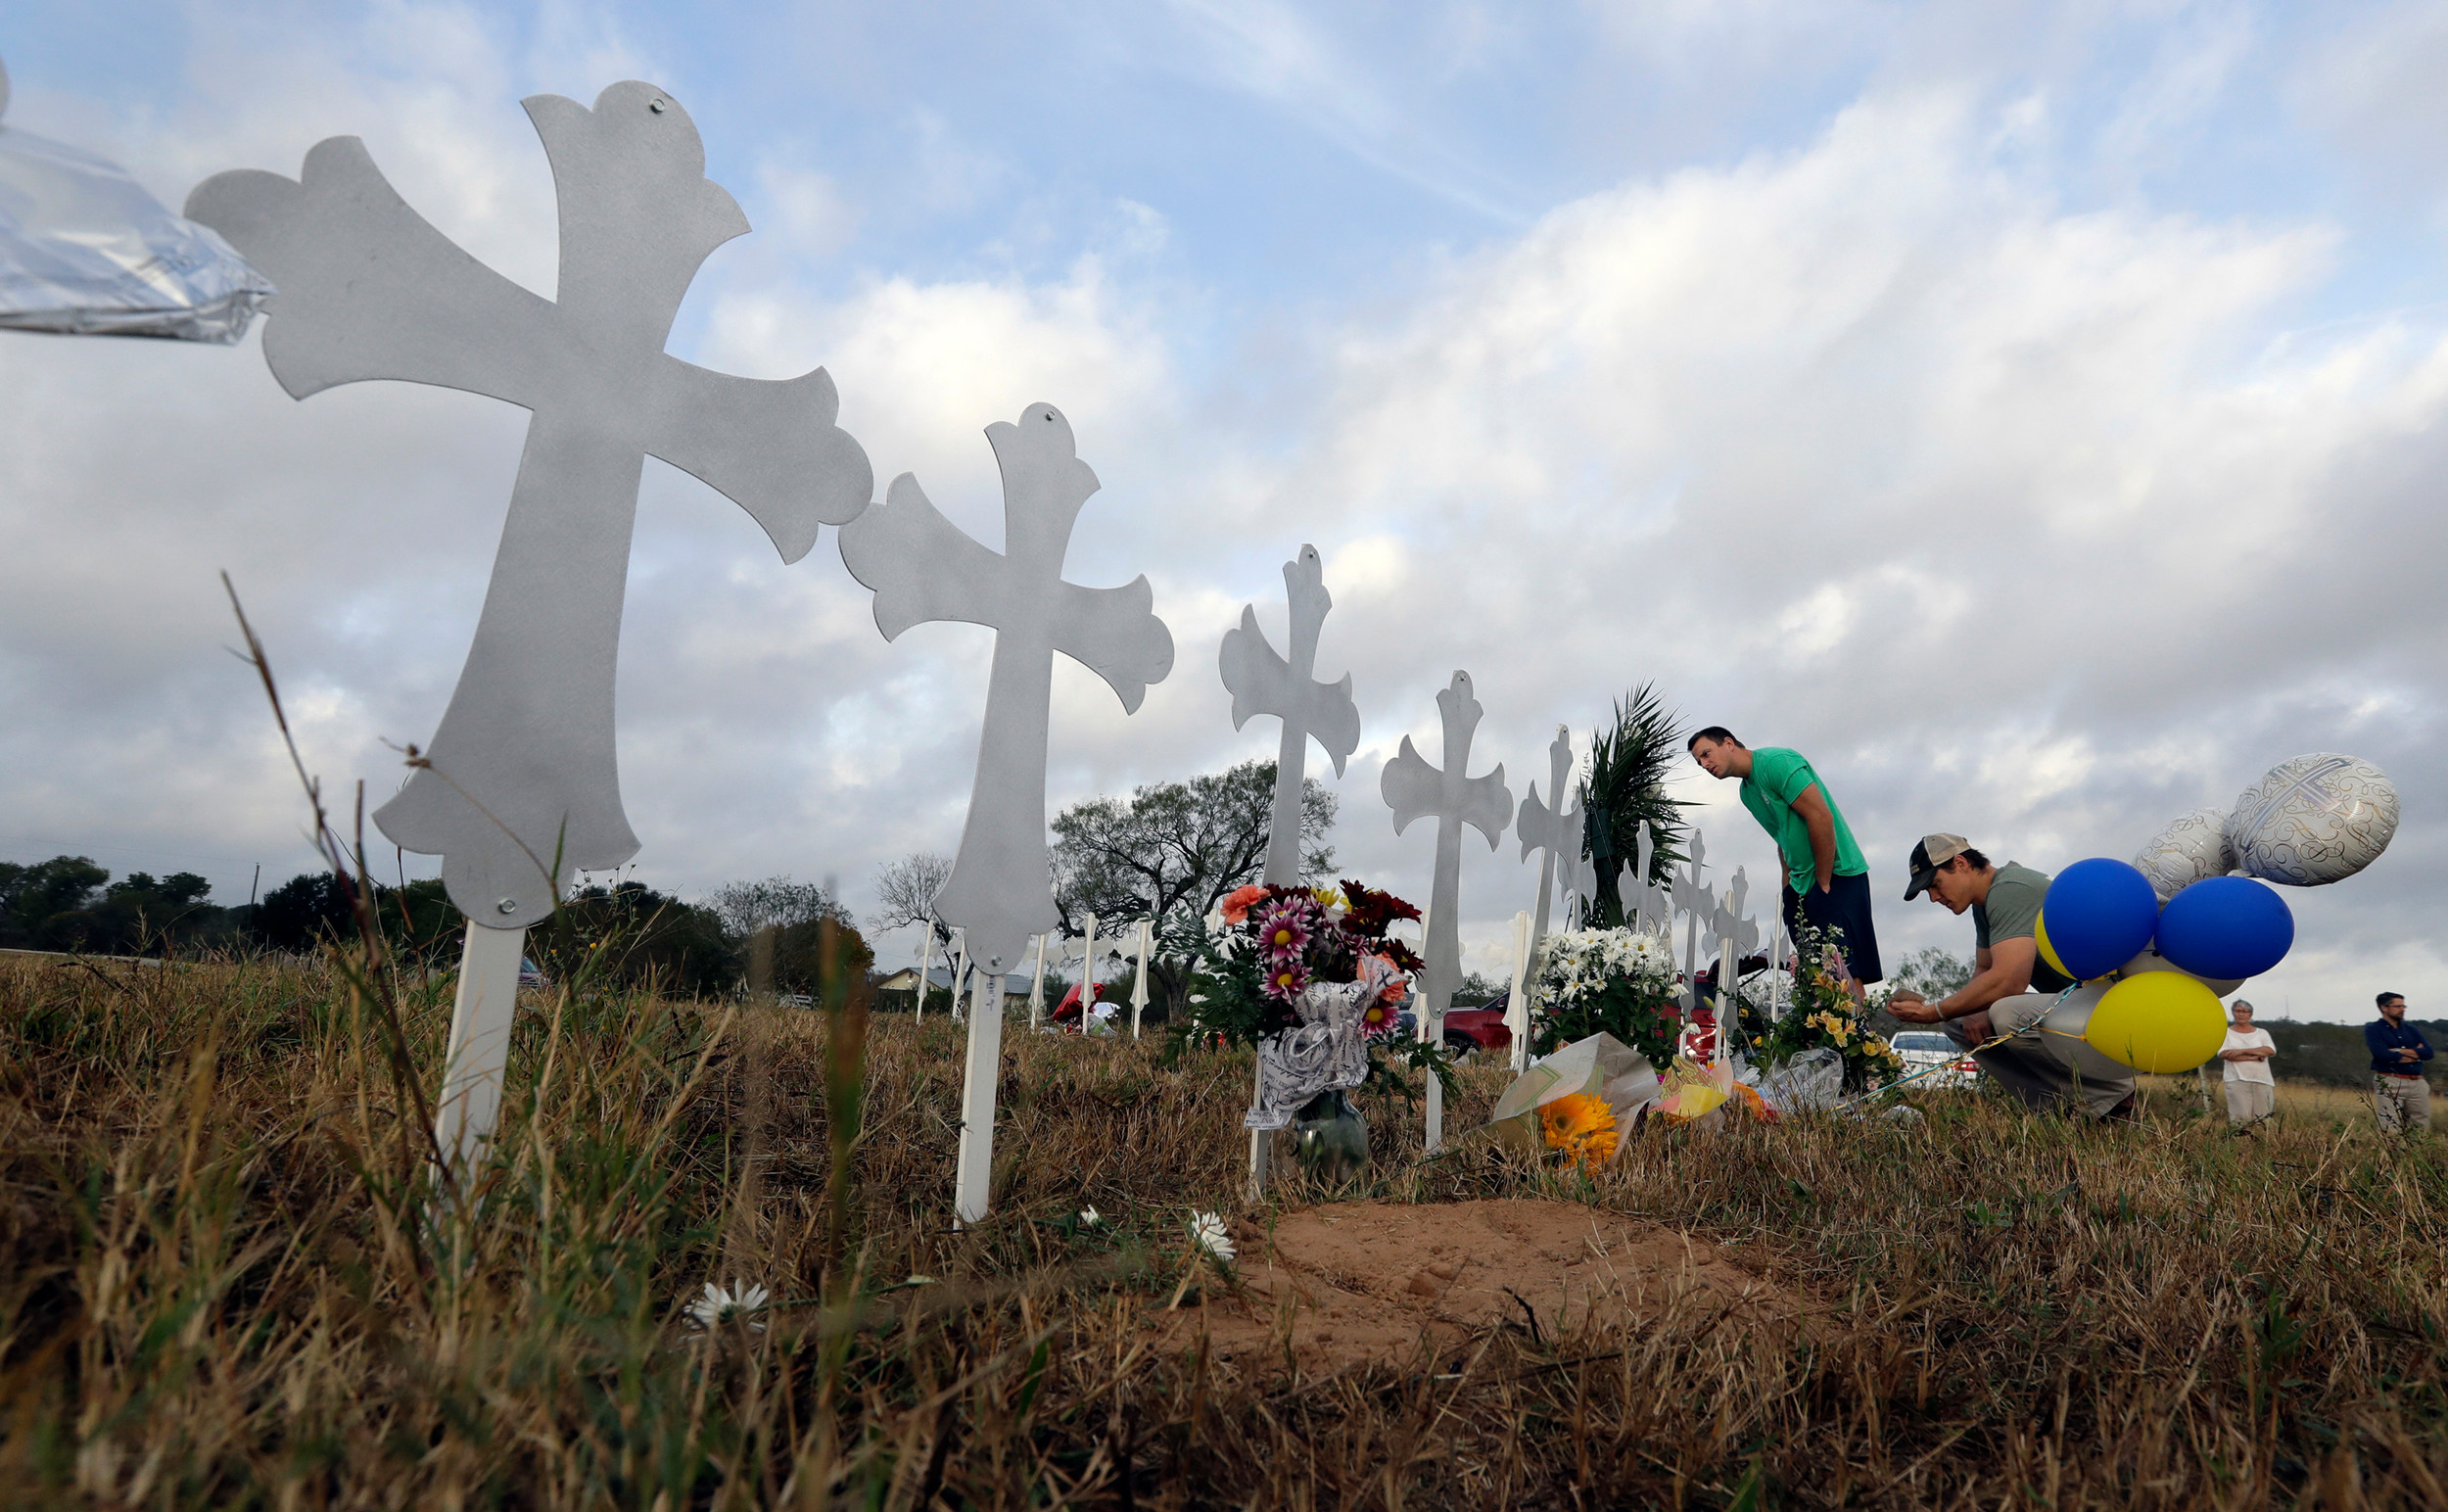 Kevin Blomstrum, left, and Kyle Dahlberg visit a makeshift memorial Tuesday for victims near the scene of a shooting at First Baptist Church of Sutherland Springs in Sutherland Springs, Texas. A man opened fire inside the church in the small South Texas community on Sunday, killing more than two dozen and injuring others.